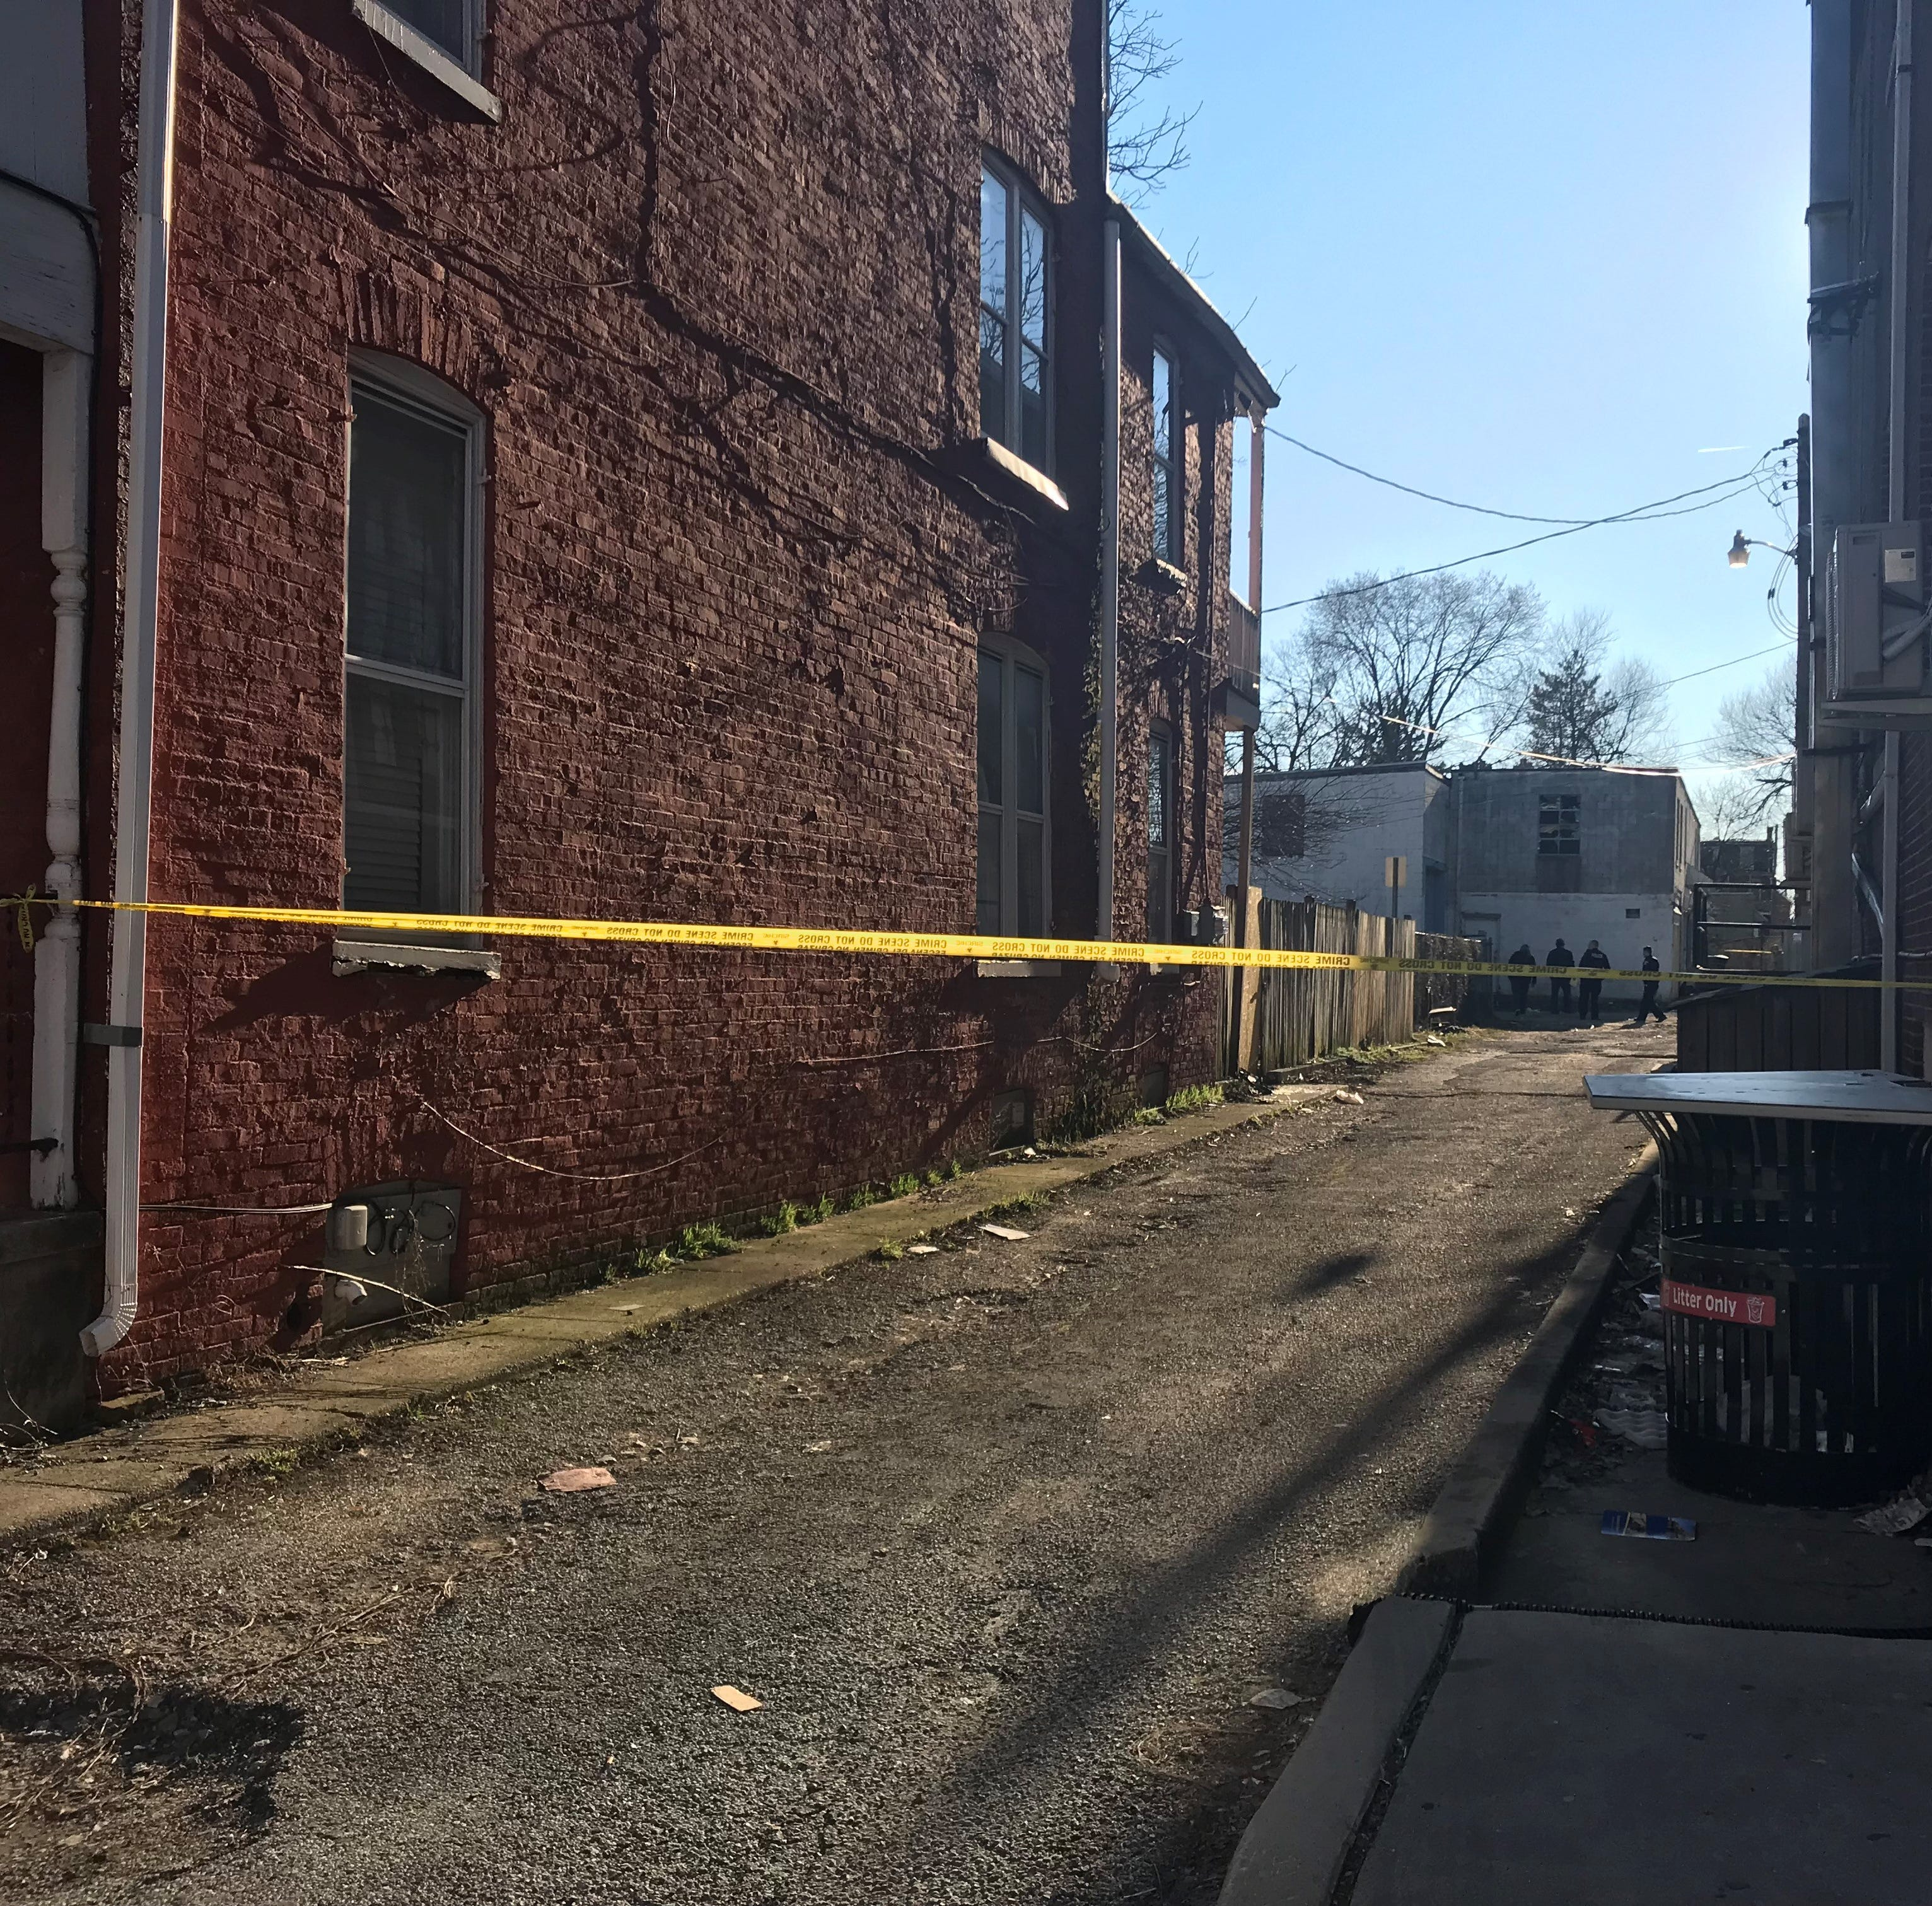 Police investigate Sunday afternoon homicide in York